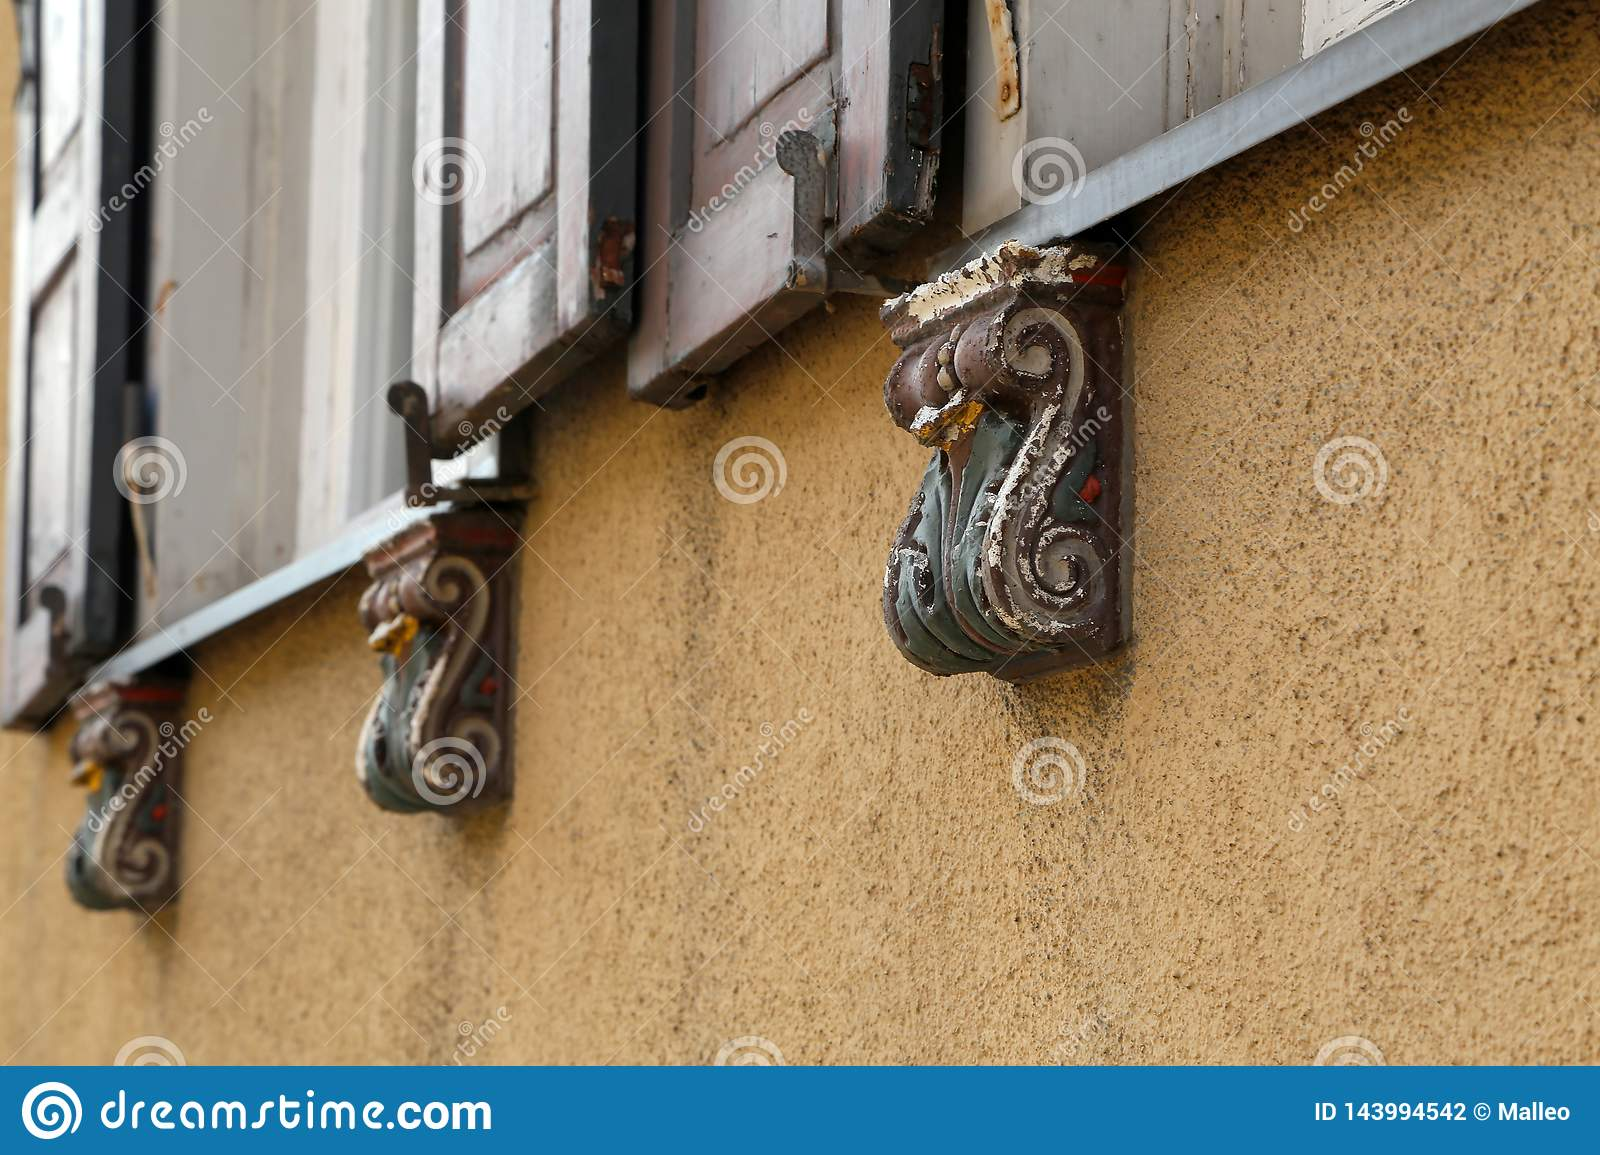 Decorative Architectural Elements Under The Windows For